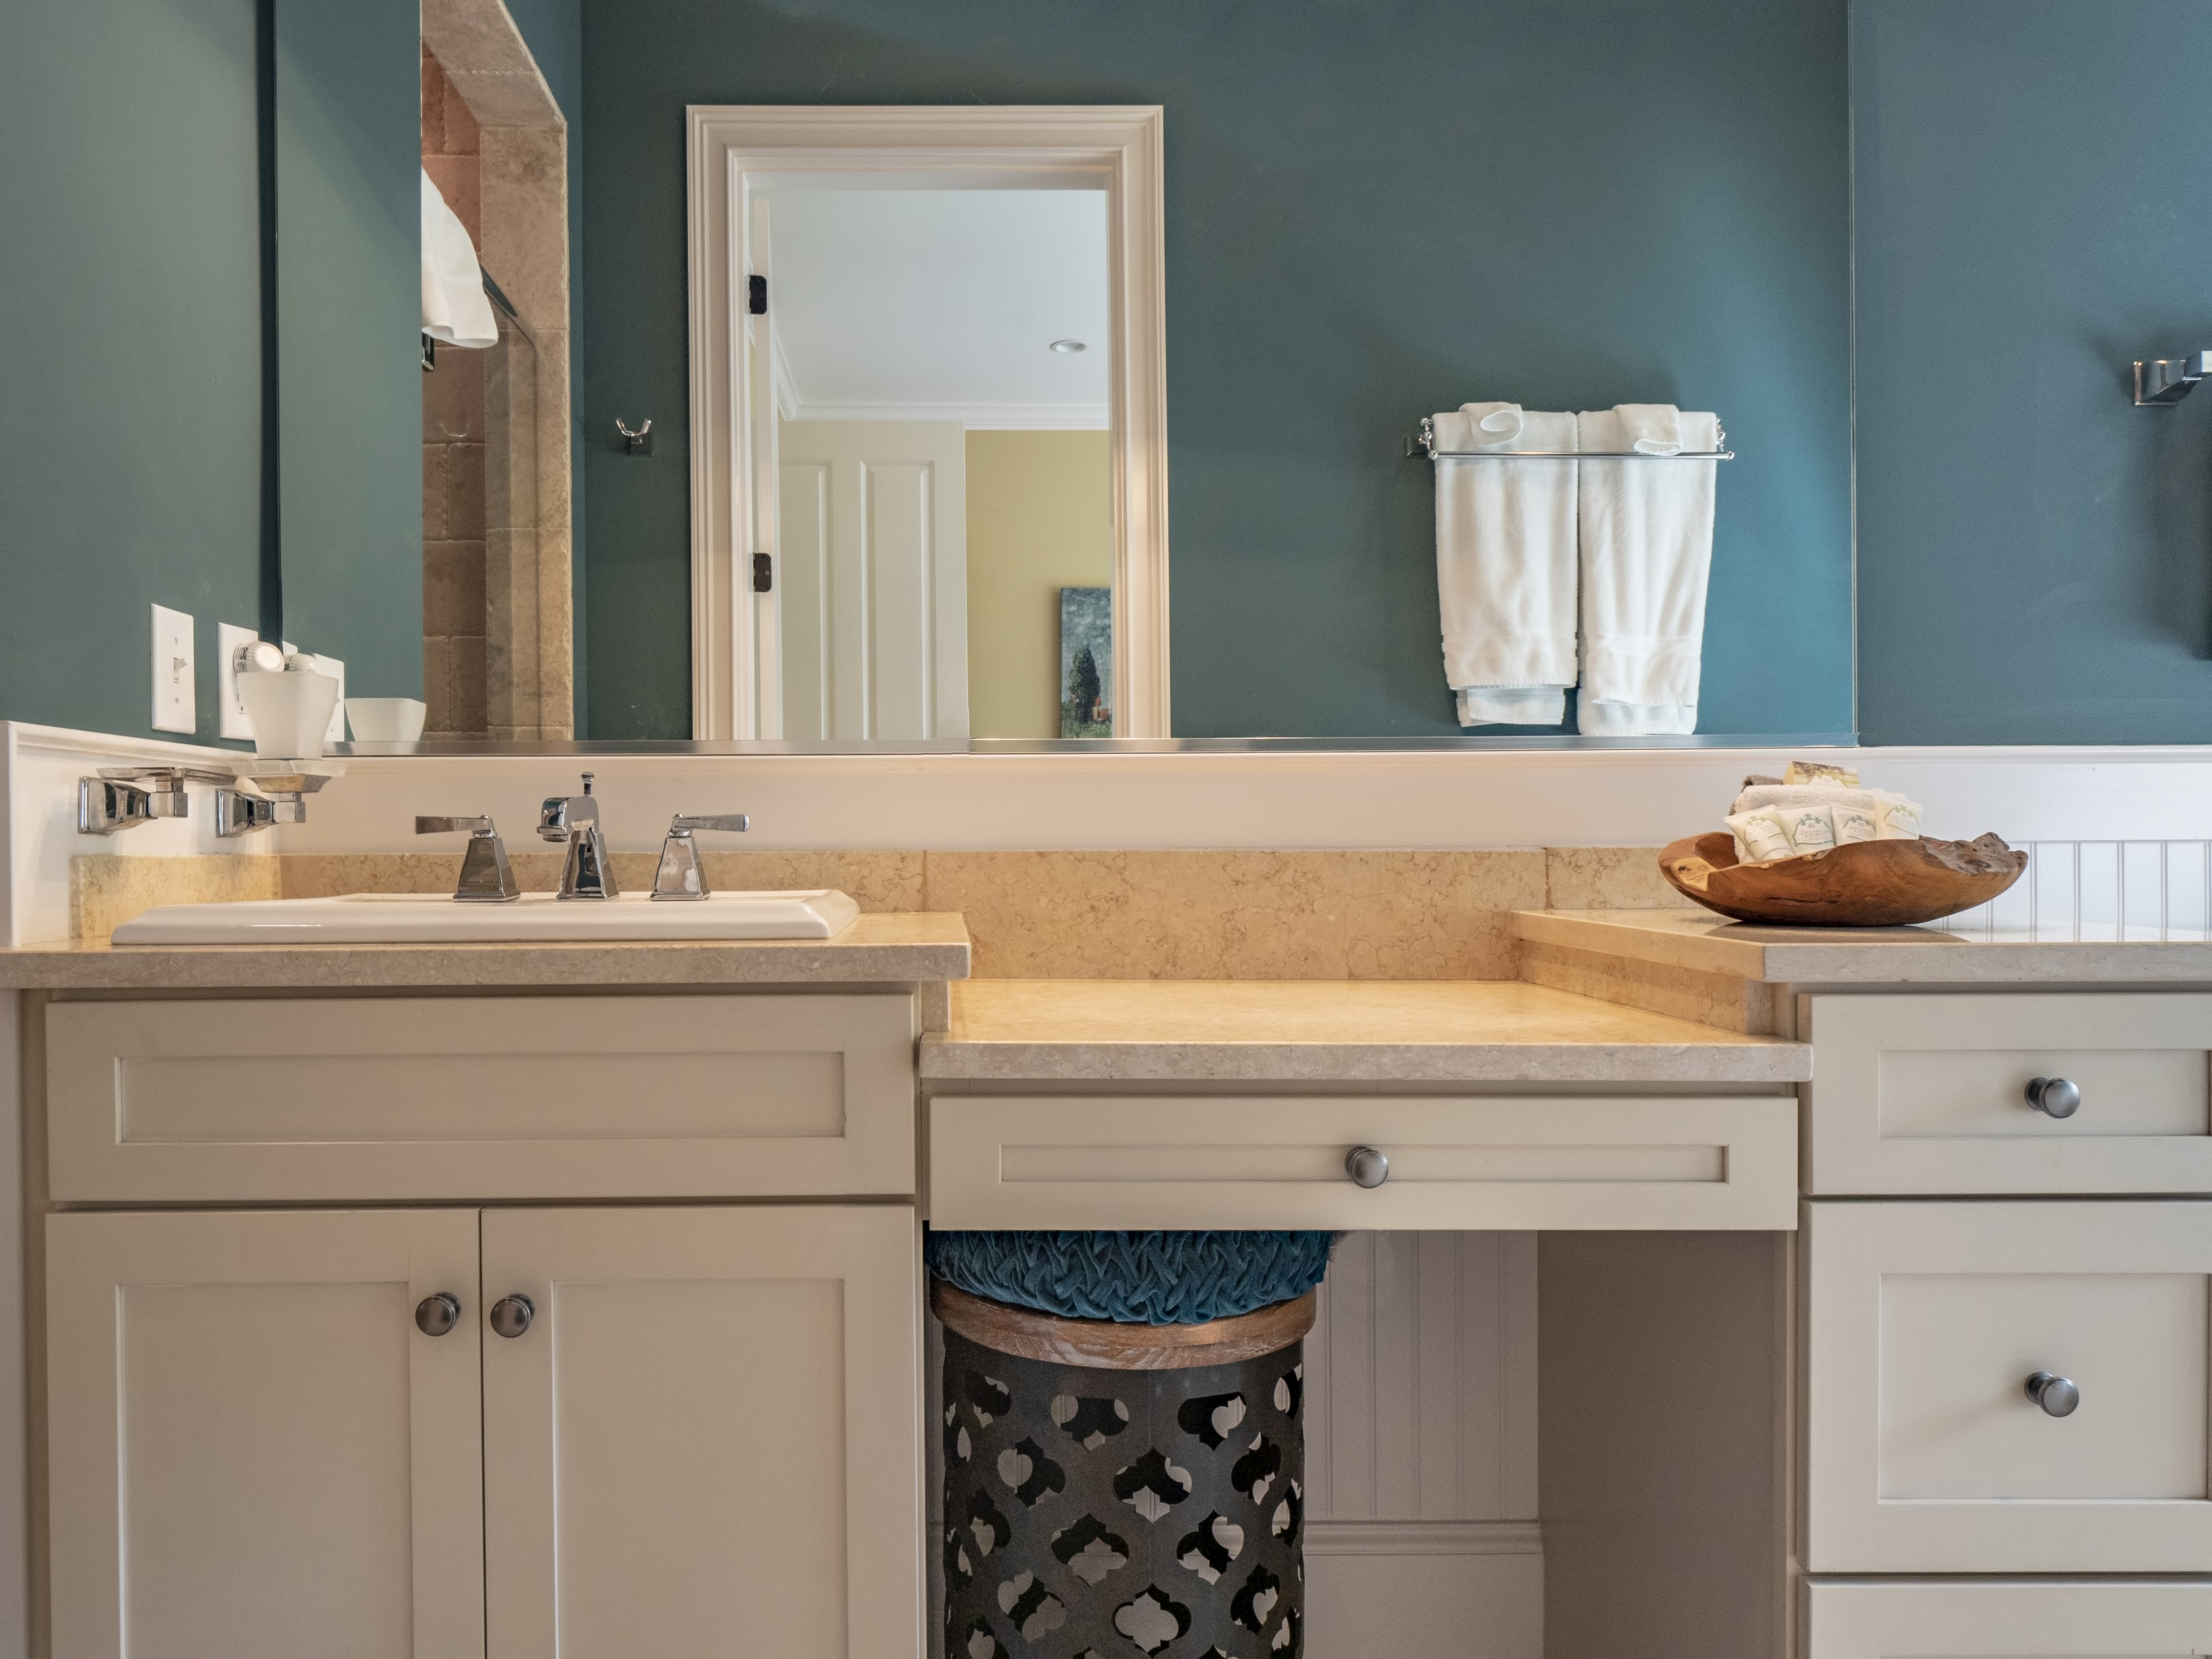 Expanded vanity area